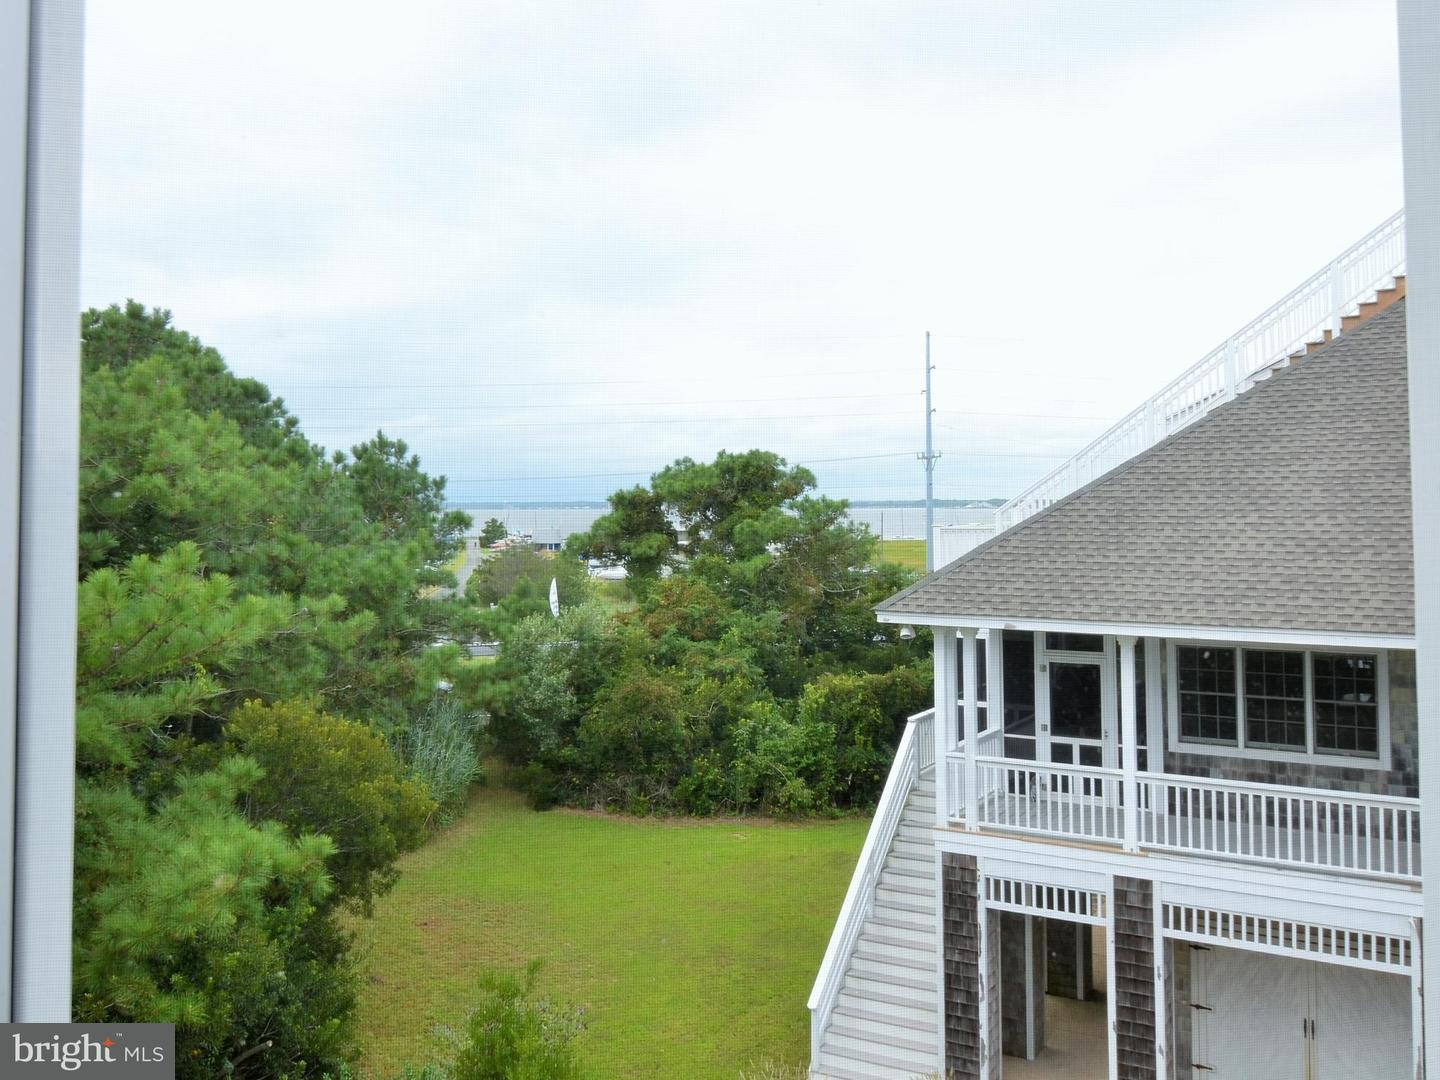 1002293530-300500810132-2018-09-25-15-08-25 31 Hall Ave | Rehoboth Beach, DE Real Estate For Sale | MLS# 1002293530  - 1st Choice Properties